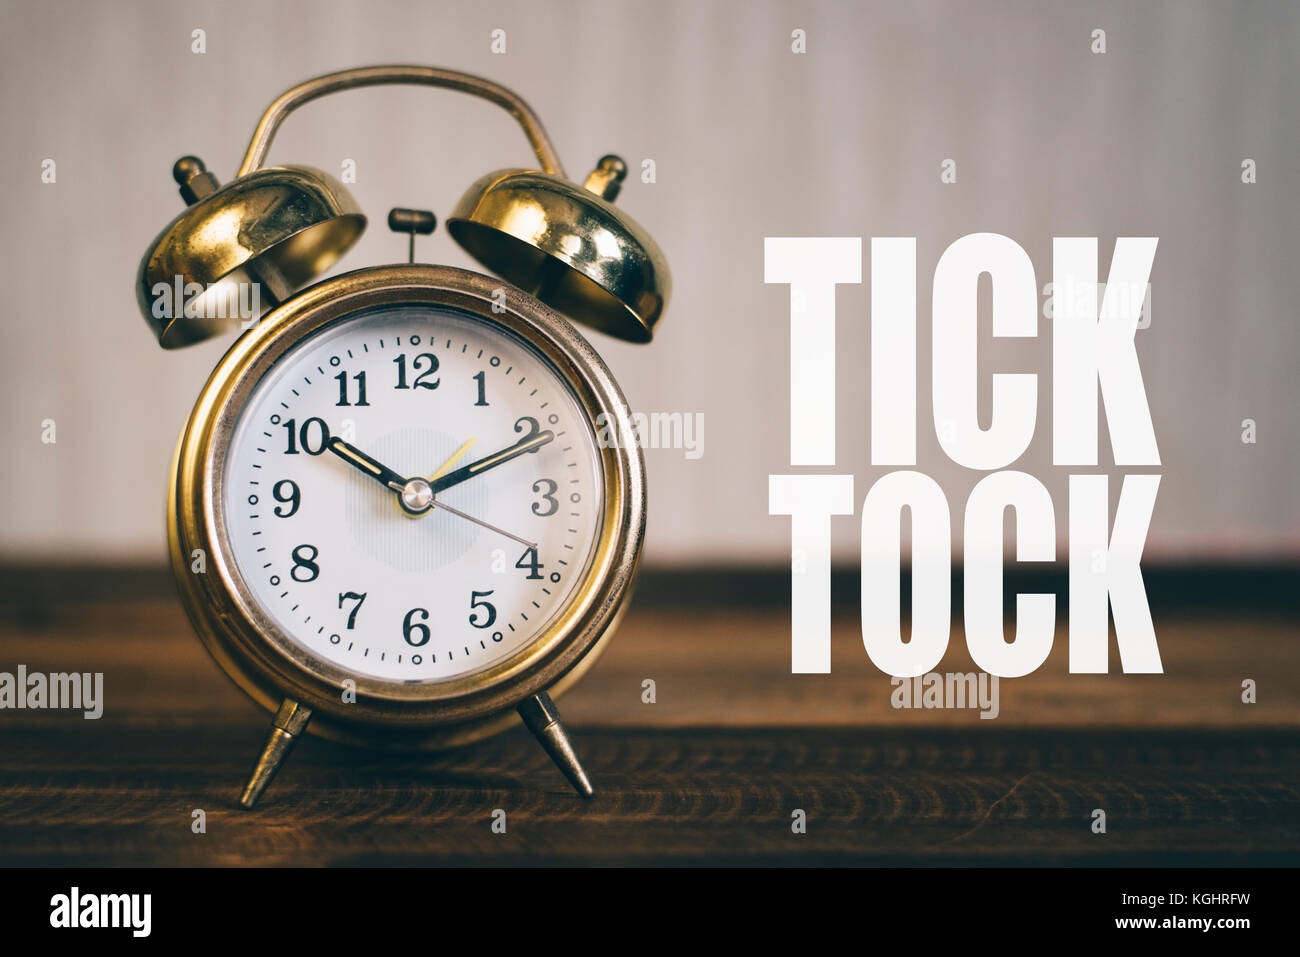 "tick tock day concept - golden bell clock on a wooden table background with ""Tick Tock"" word Stock Photo"